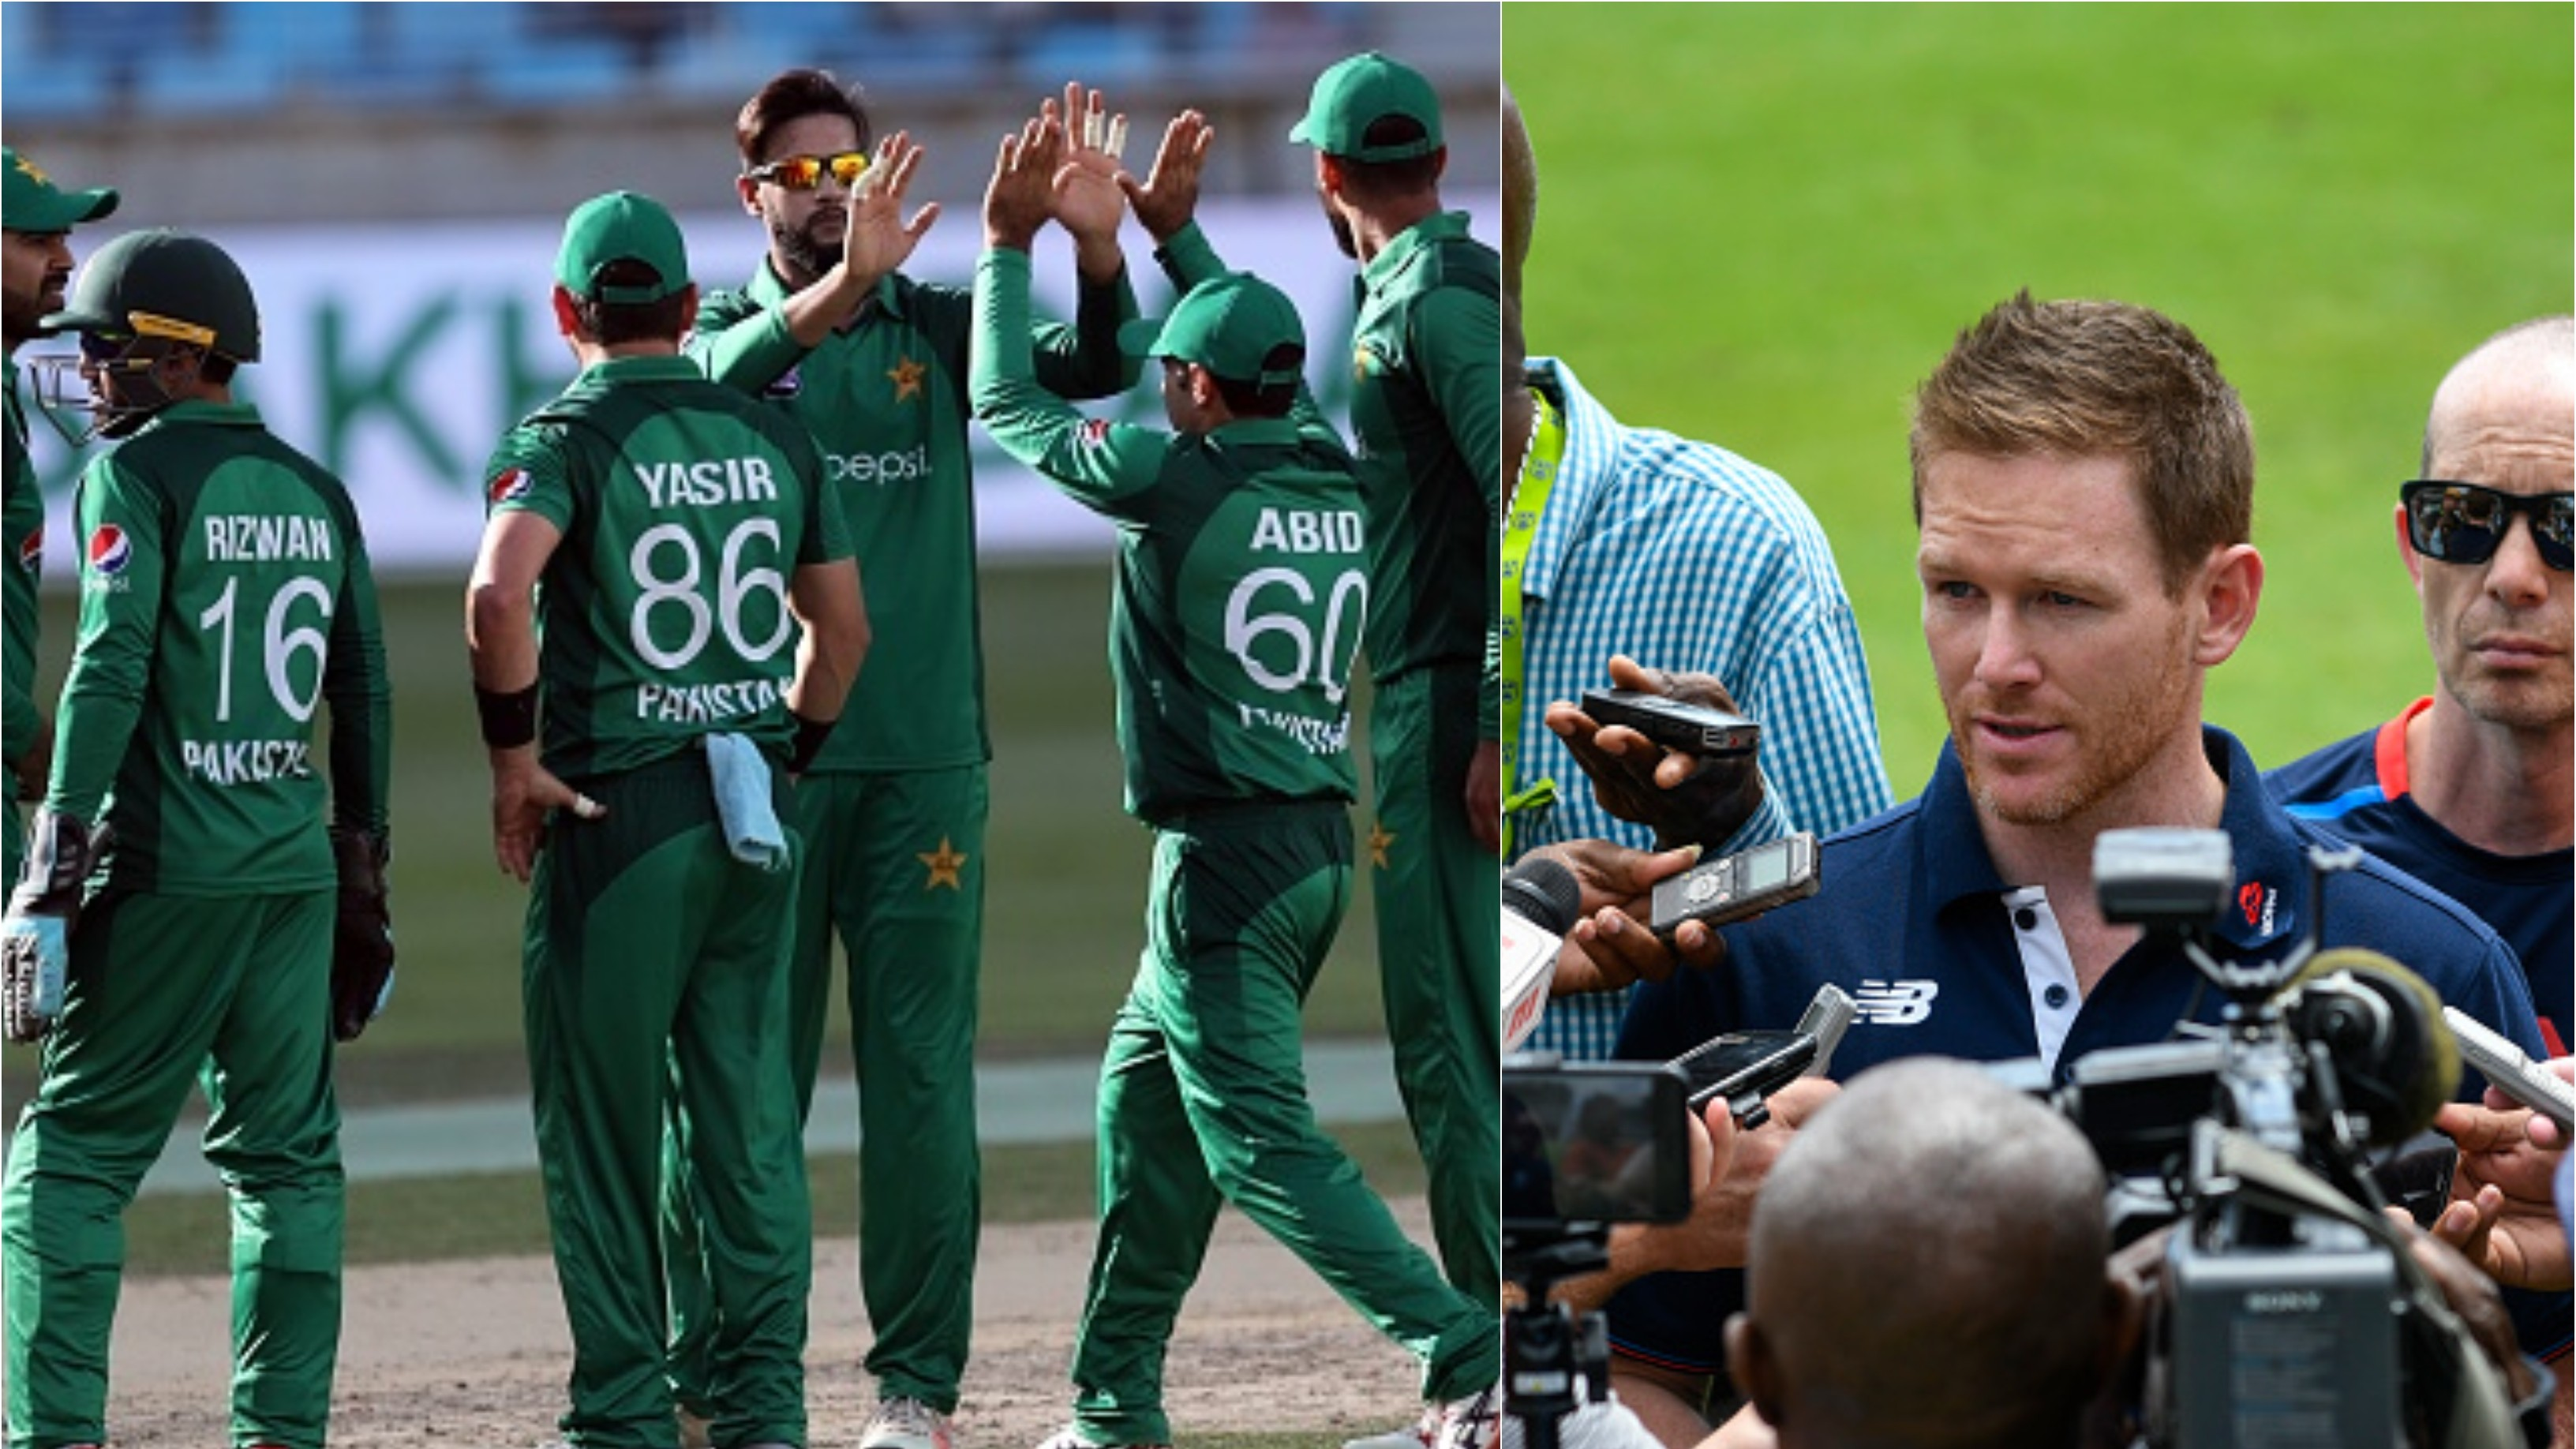 CWC 2019: Eoin Morgan picks Pakistan as one of top favorites for World Cup 2019